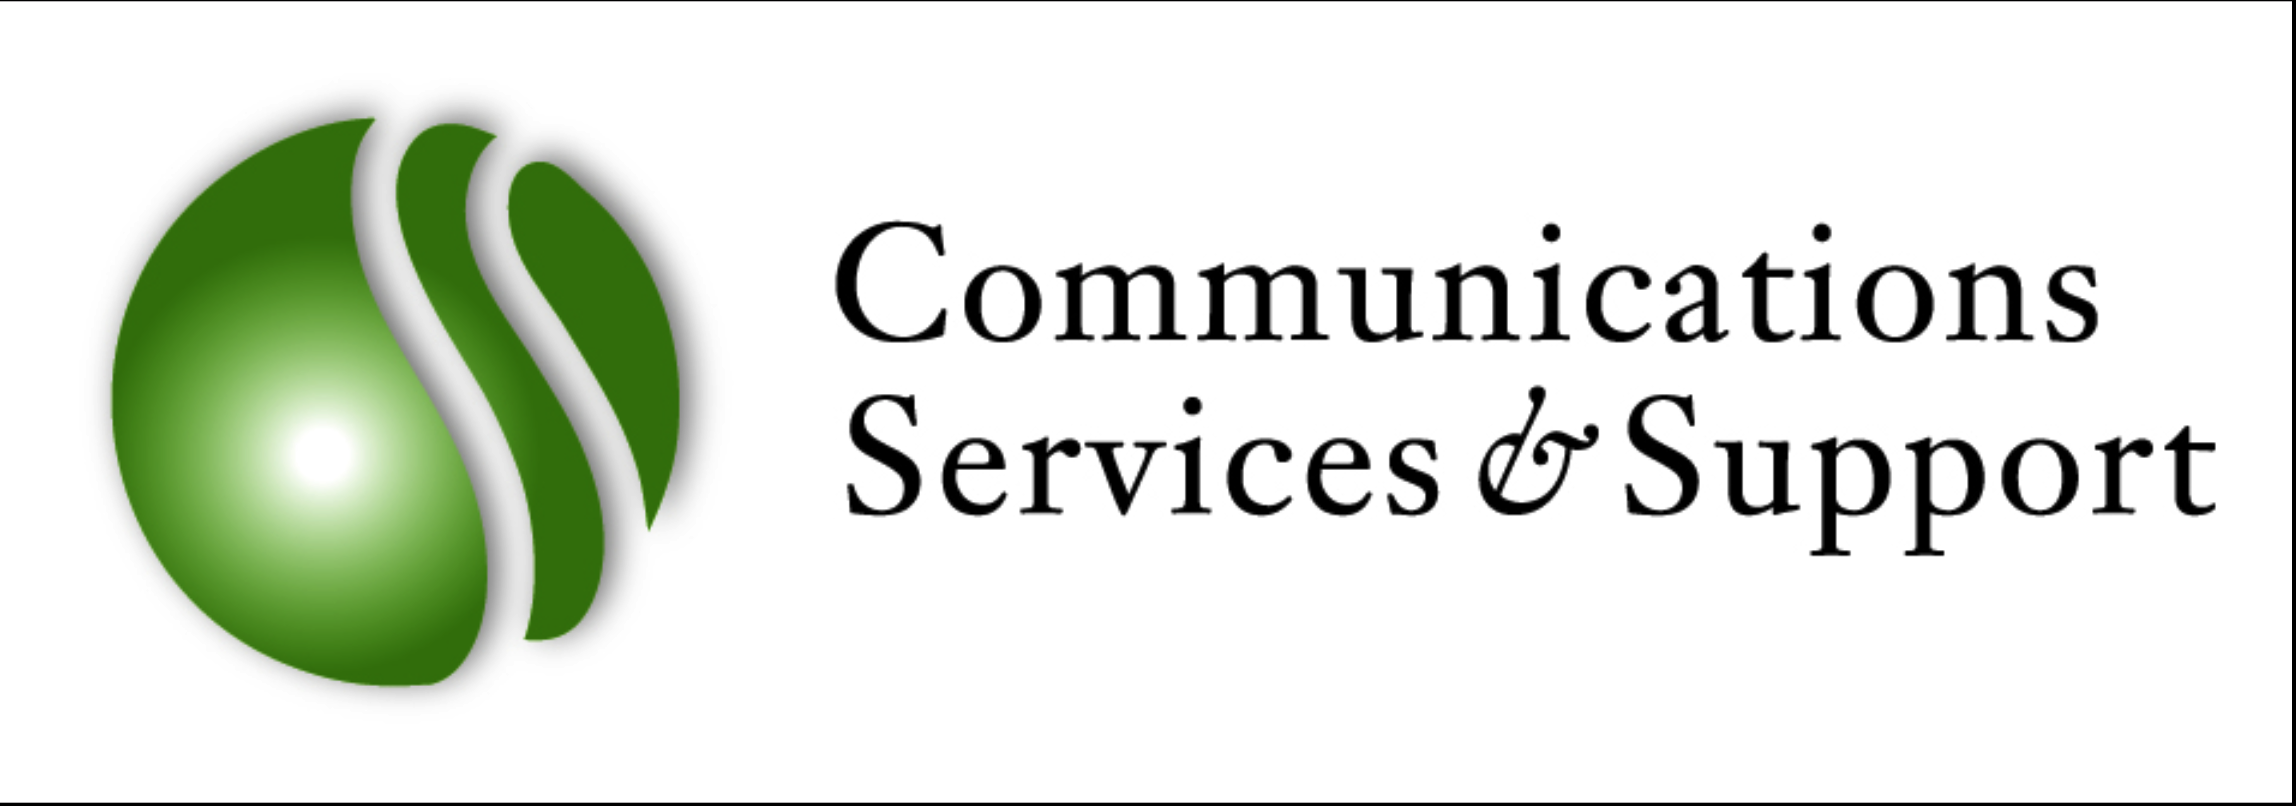 Communications Services & Support Logo